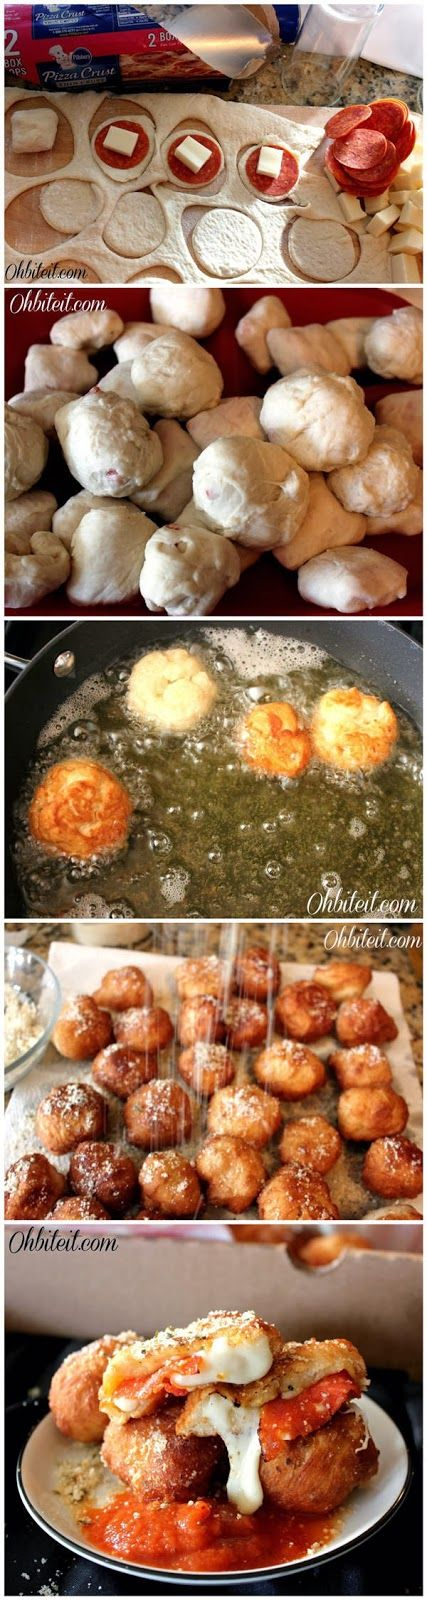 Fried Pizza Poppers - Latest Food #recipe #pizza